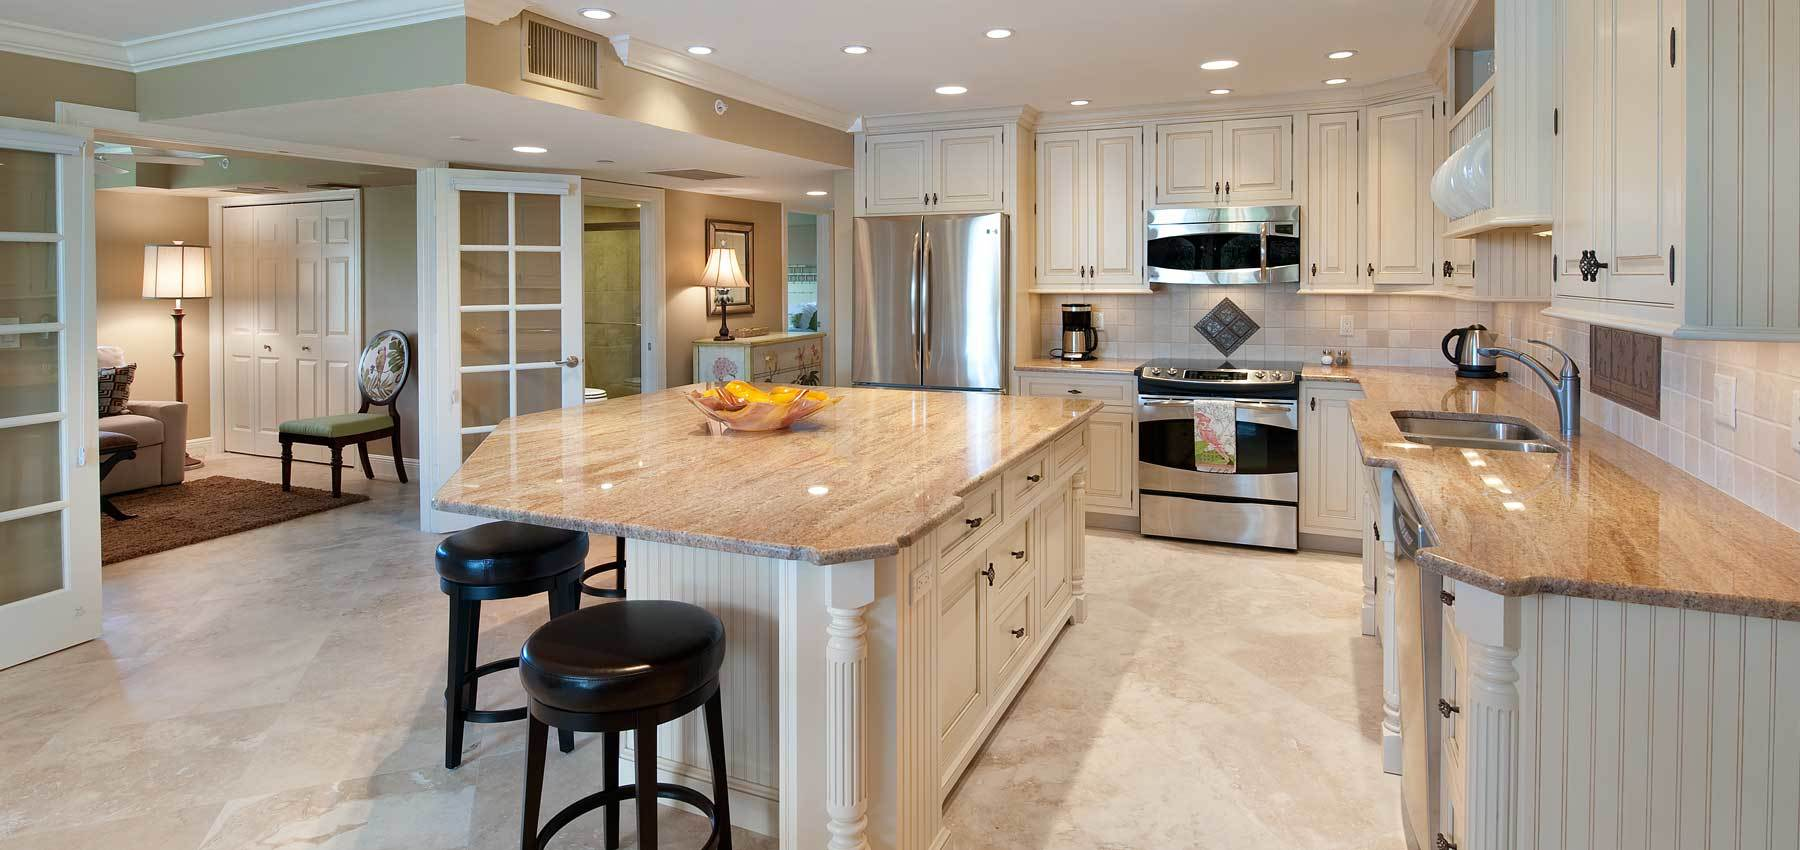 Kitchen remodeling kgt remodeling How to redesign your kitchen